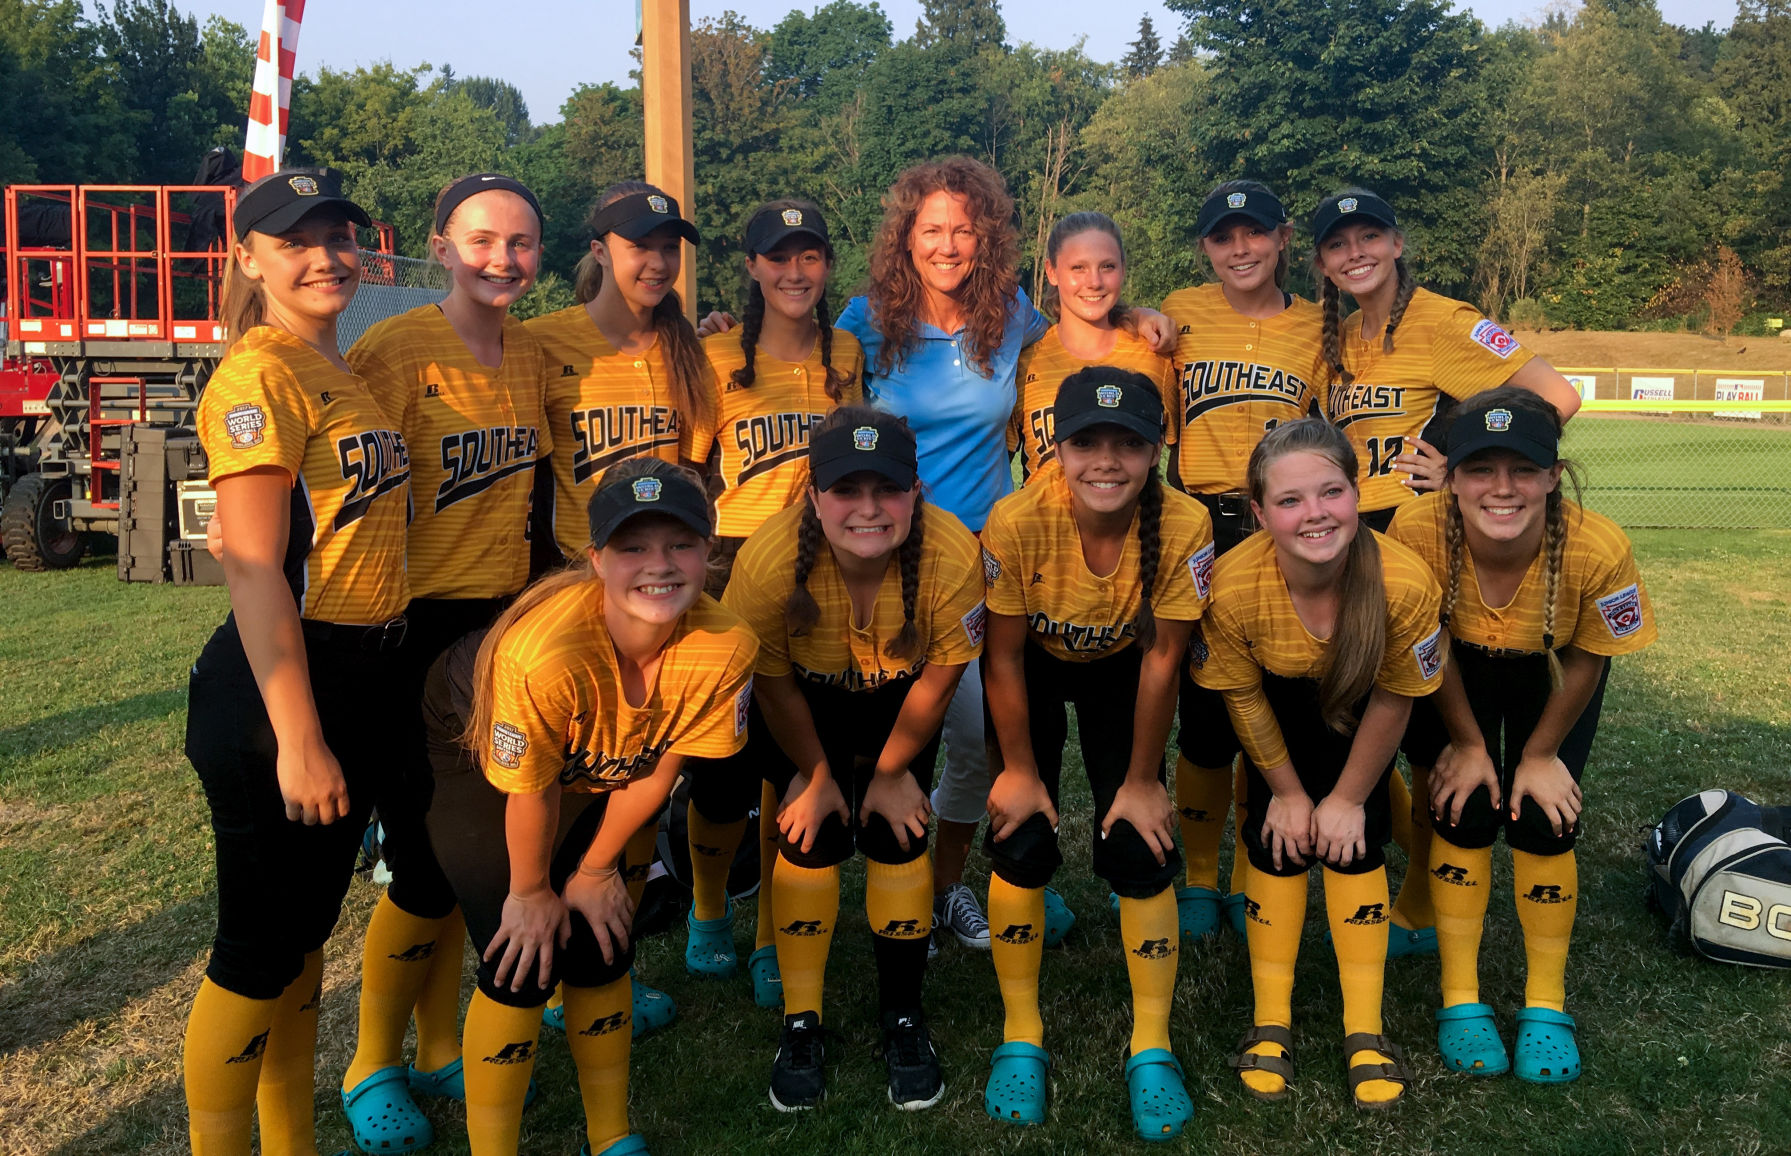 Little League softball team disqualified for Snapchat post